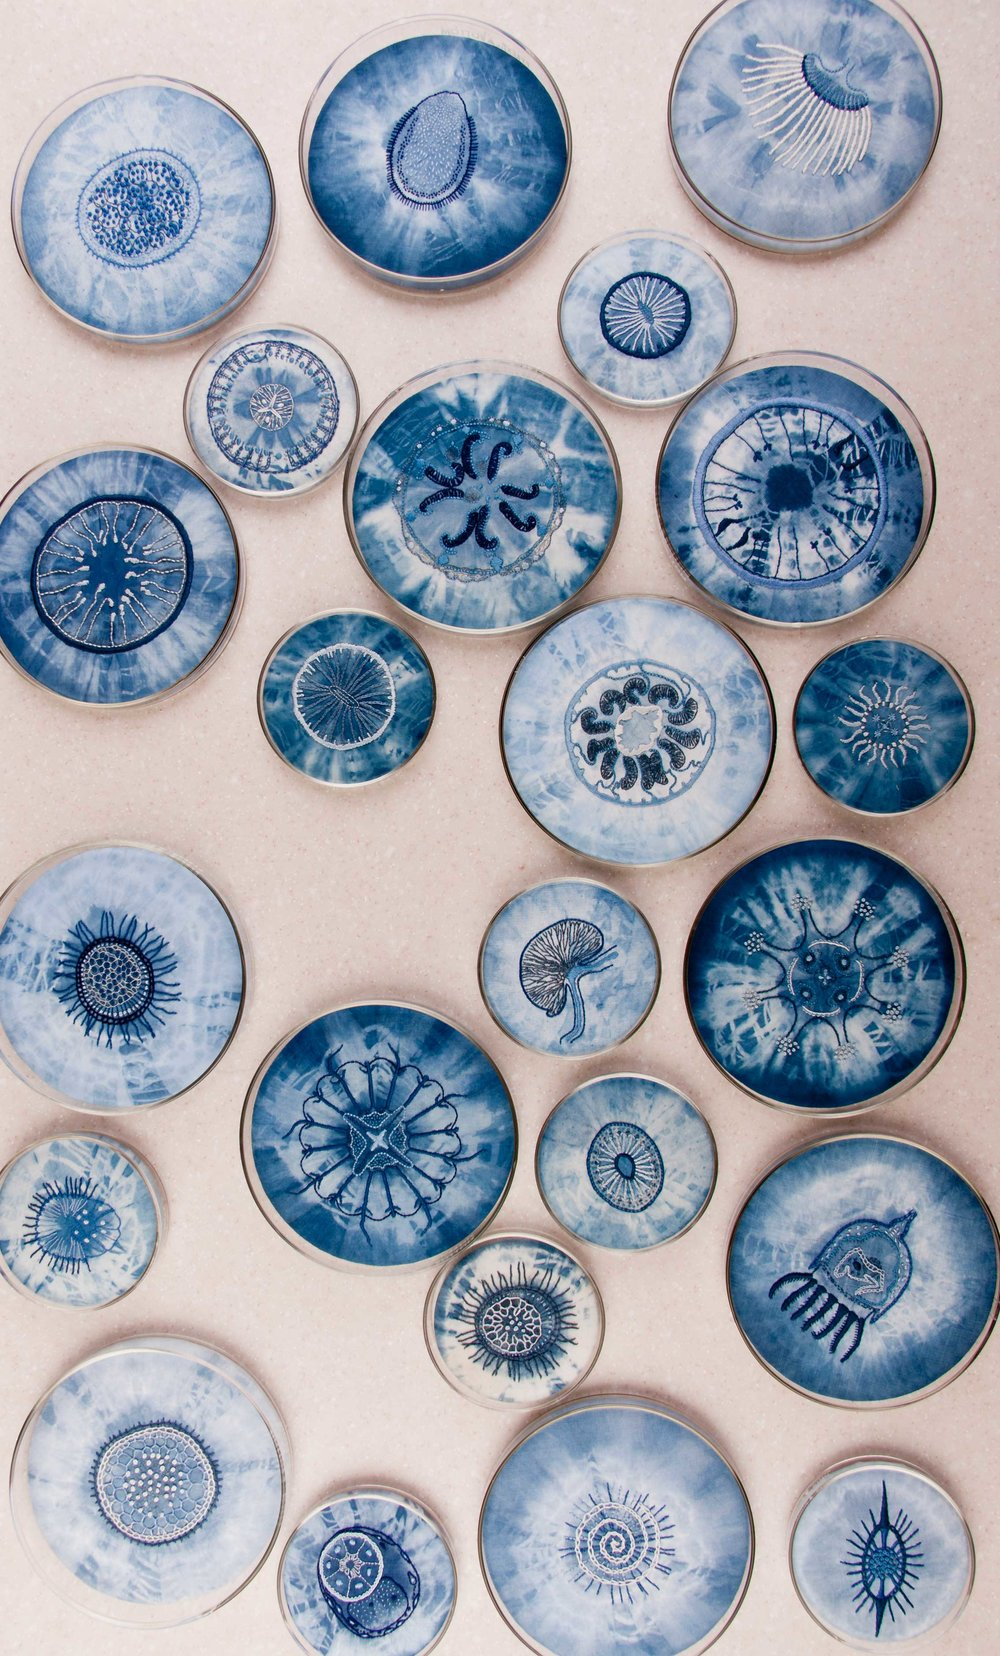 Labouratoire,  indigo tie-dye and cotton embroidery on cotton and linen, glass Petri dishes, table, 2007  Photo: Jeff Crawford